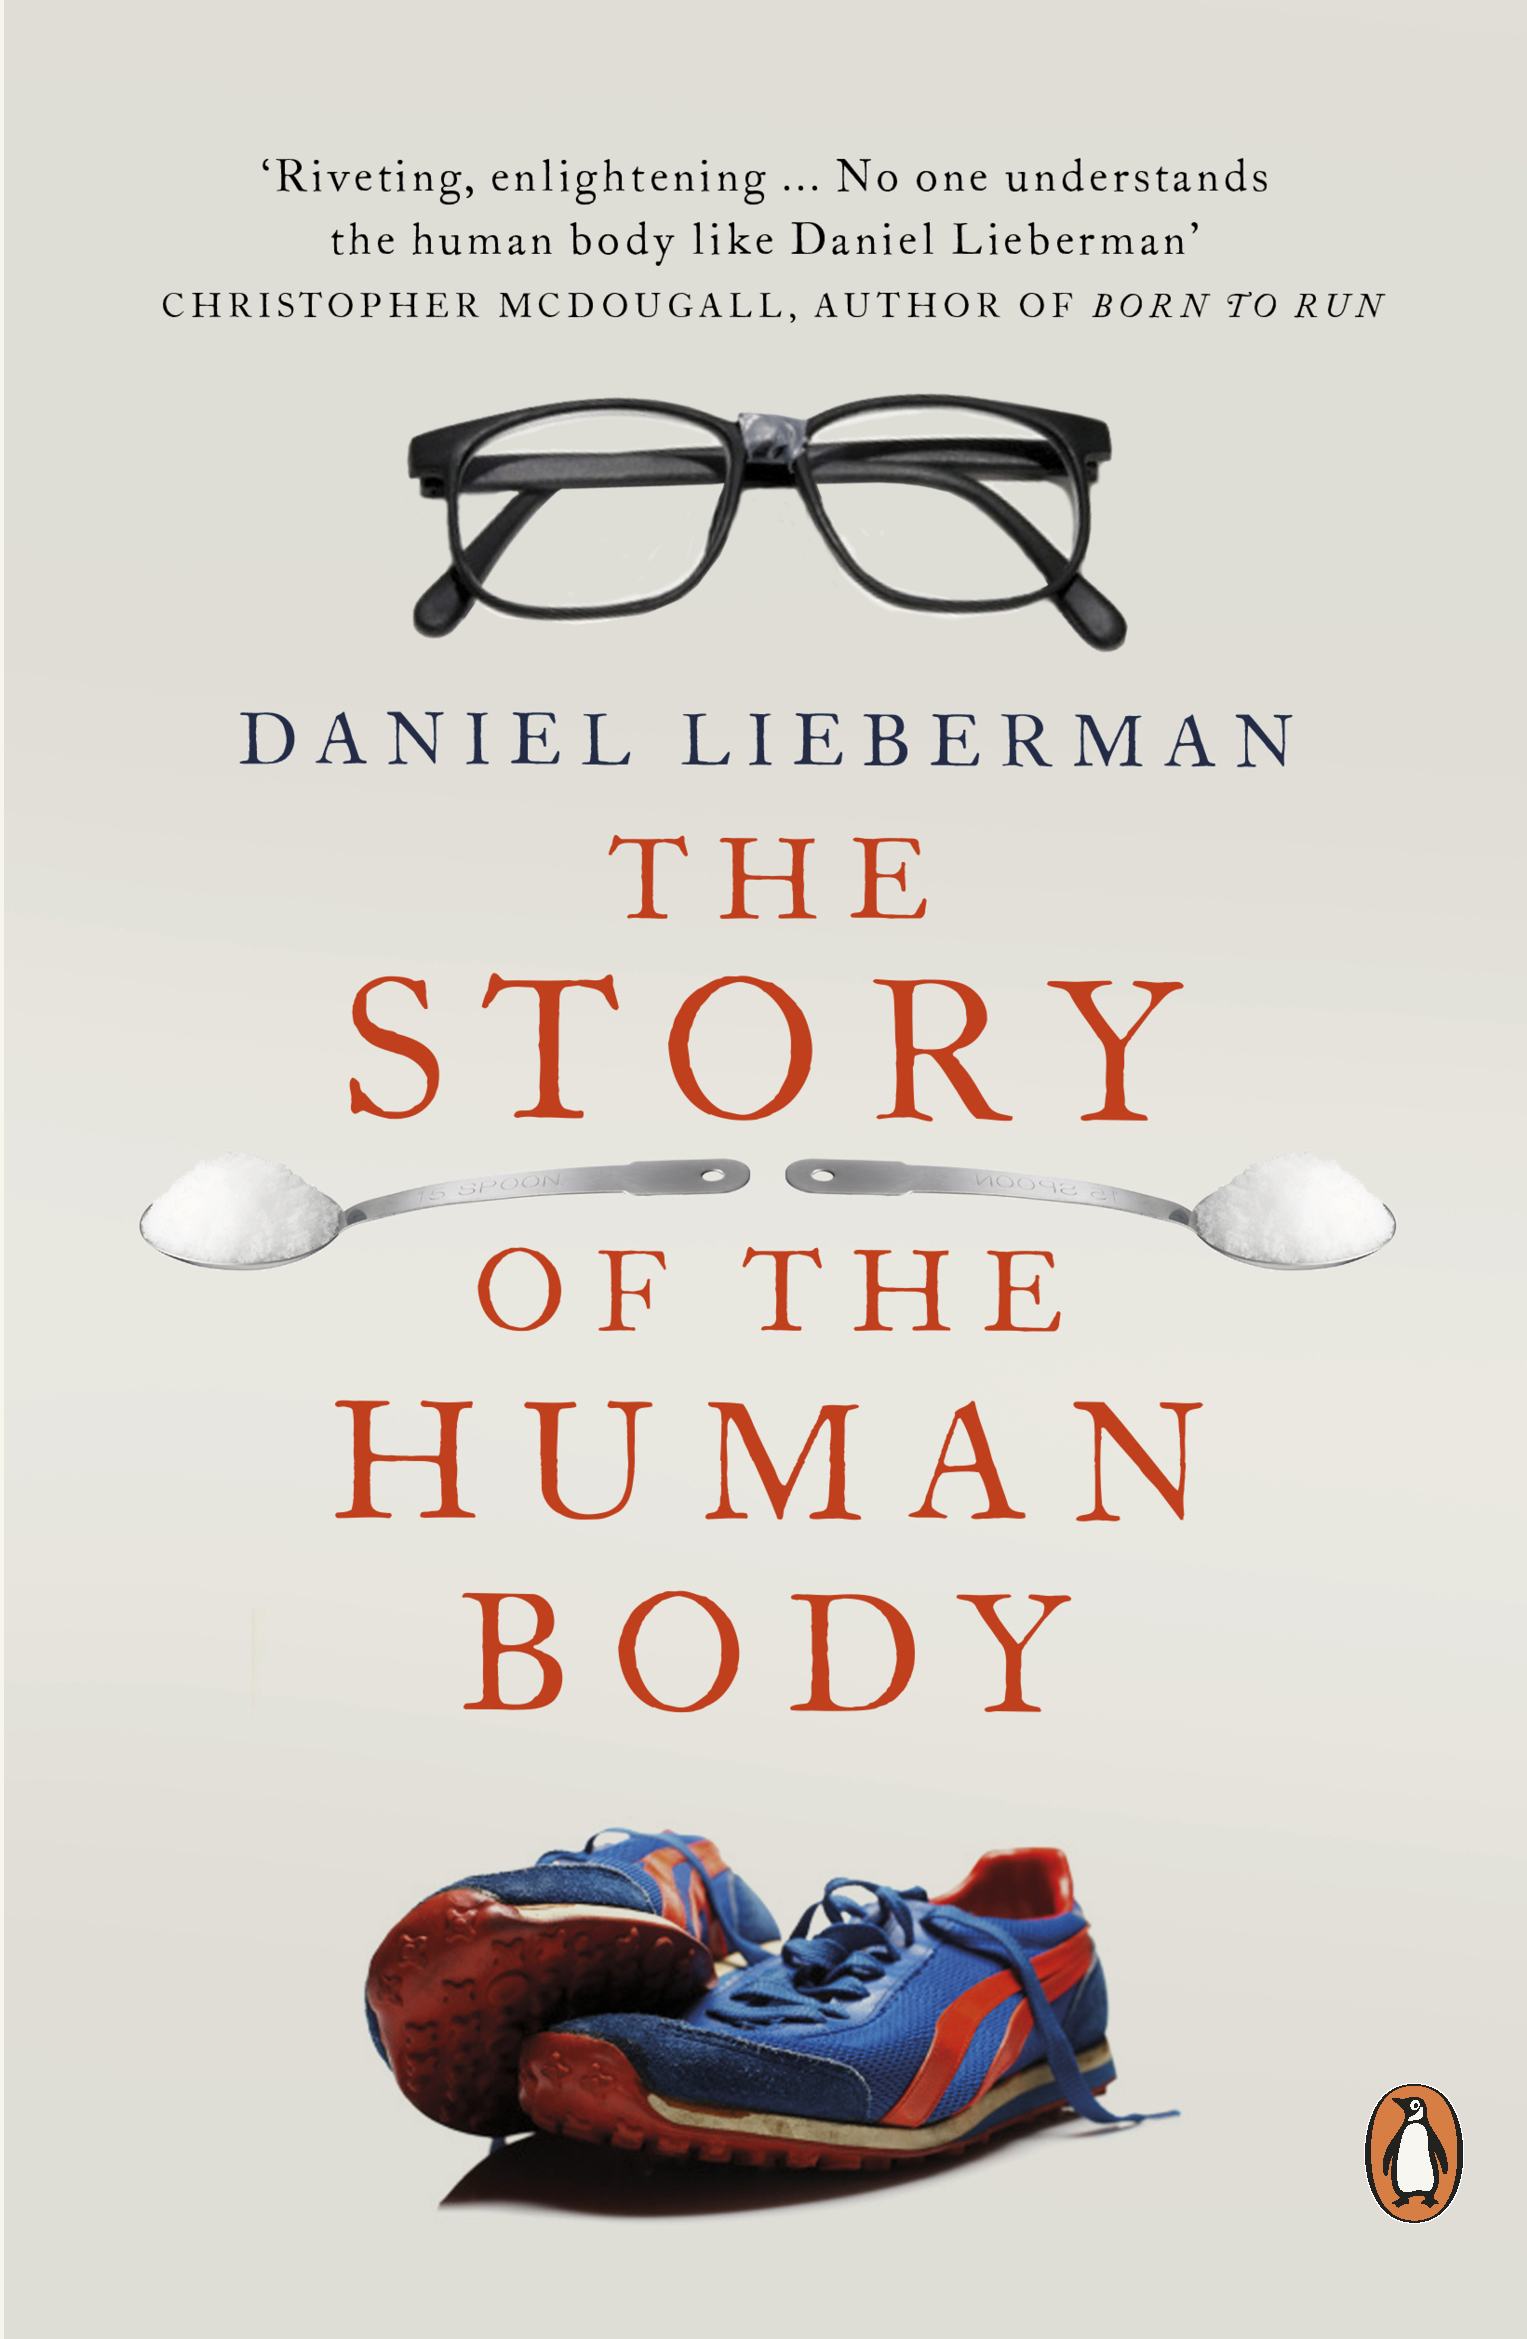 The Story of the Human Body